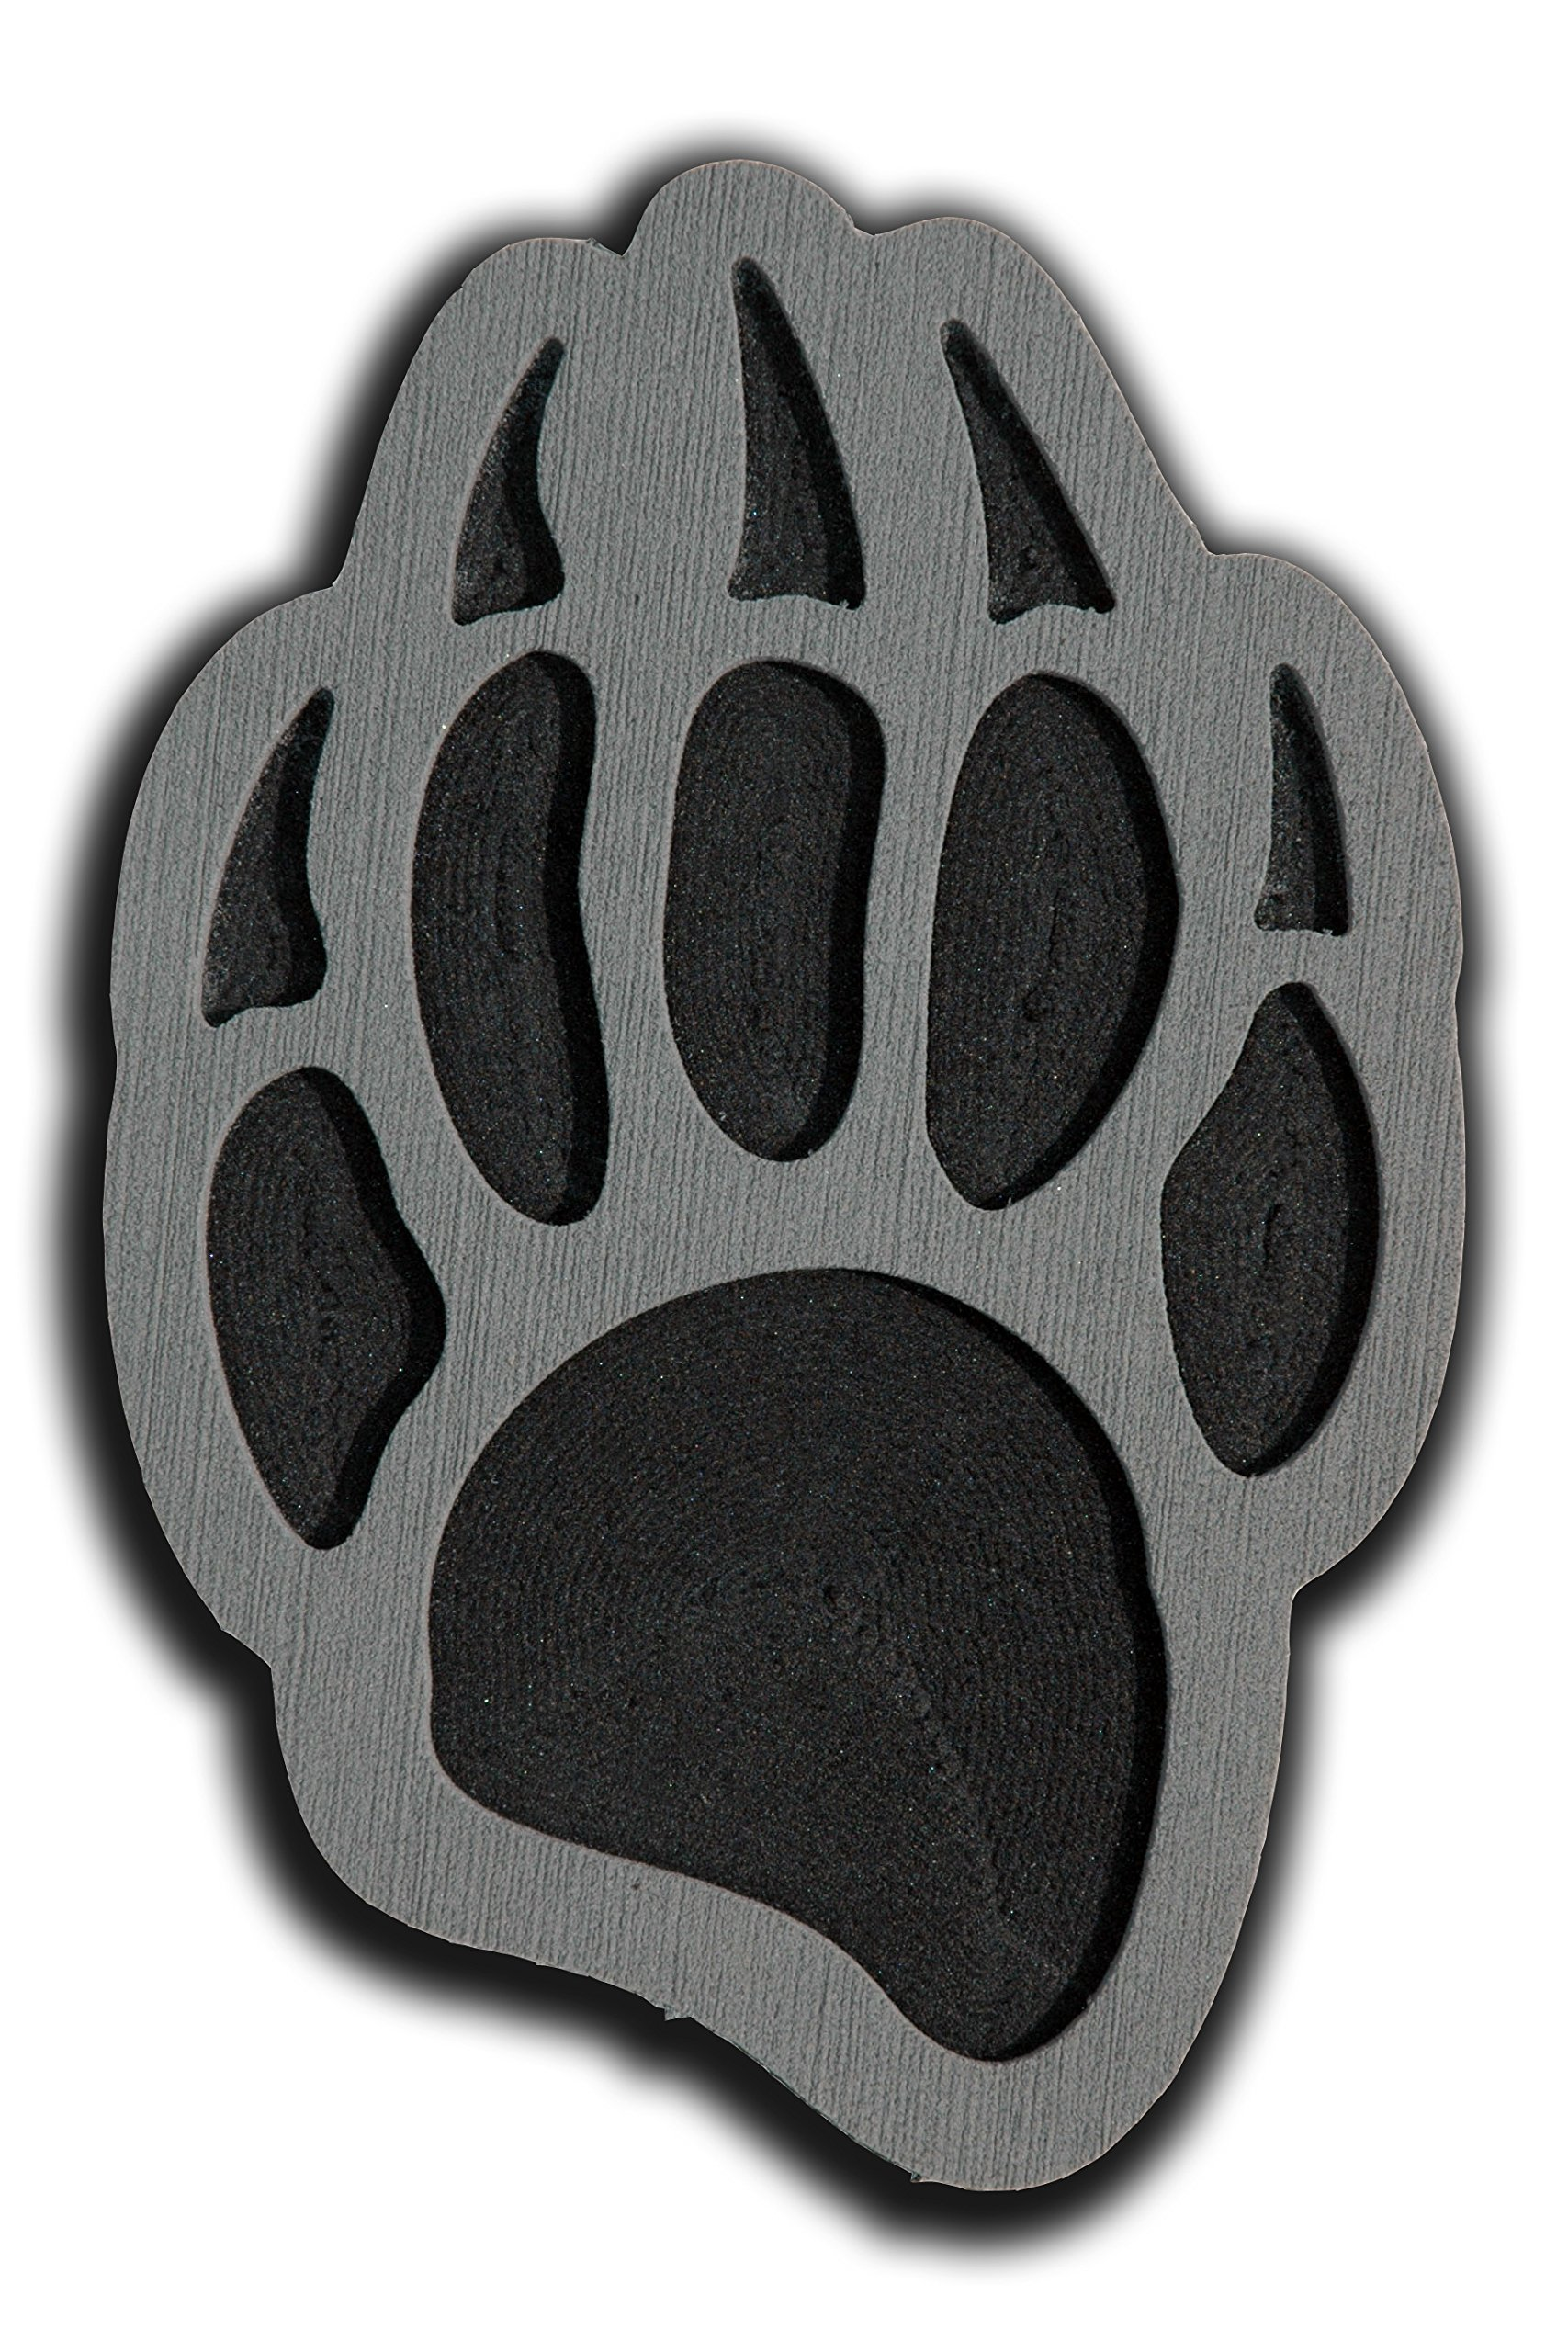 Toejamr Stomp Pad - Grizzly Bear - Gray